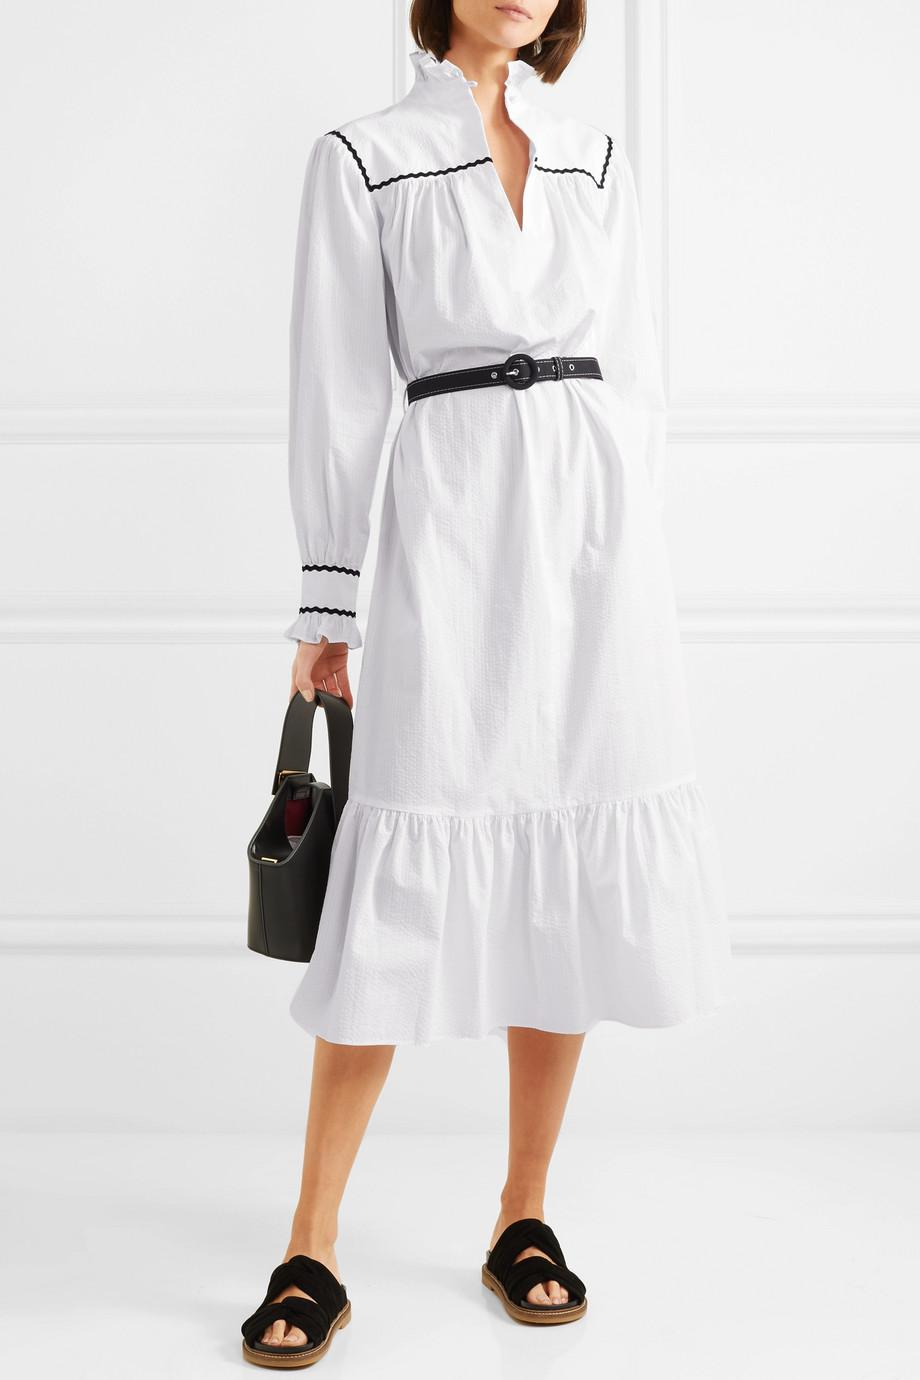 Free Shipping Low Price Ruffle-trimmed Cotton-seersucker Midi Dress - White AlexaChung Discount Shopping Online Clearance Good Selling Wear Resistance 2018 Unisex Cheap Online rTzsj